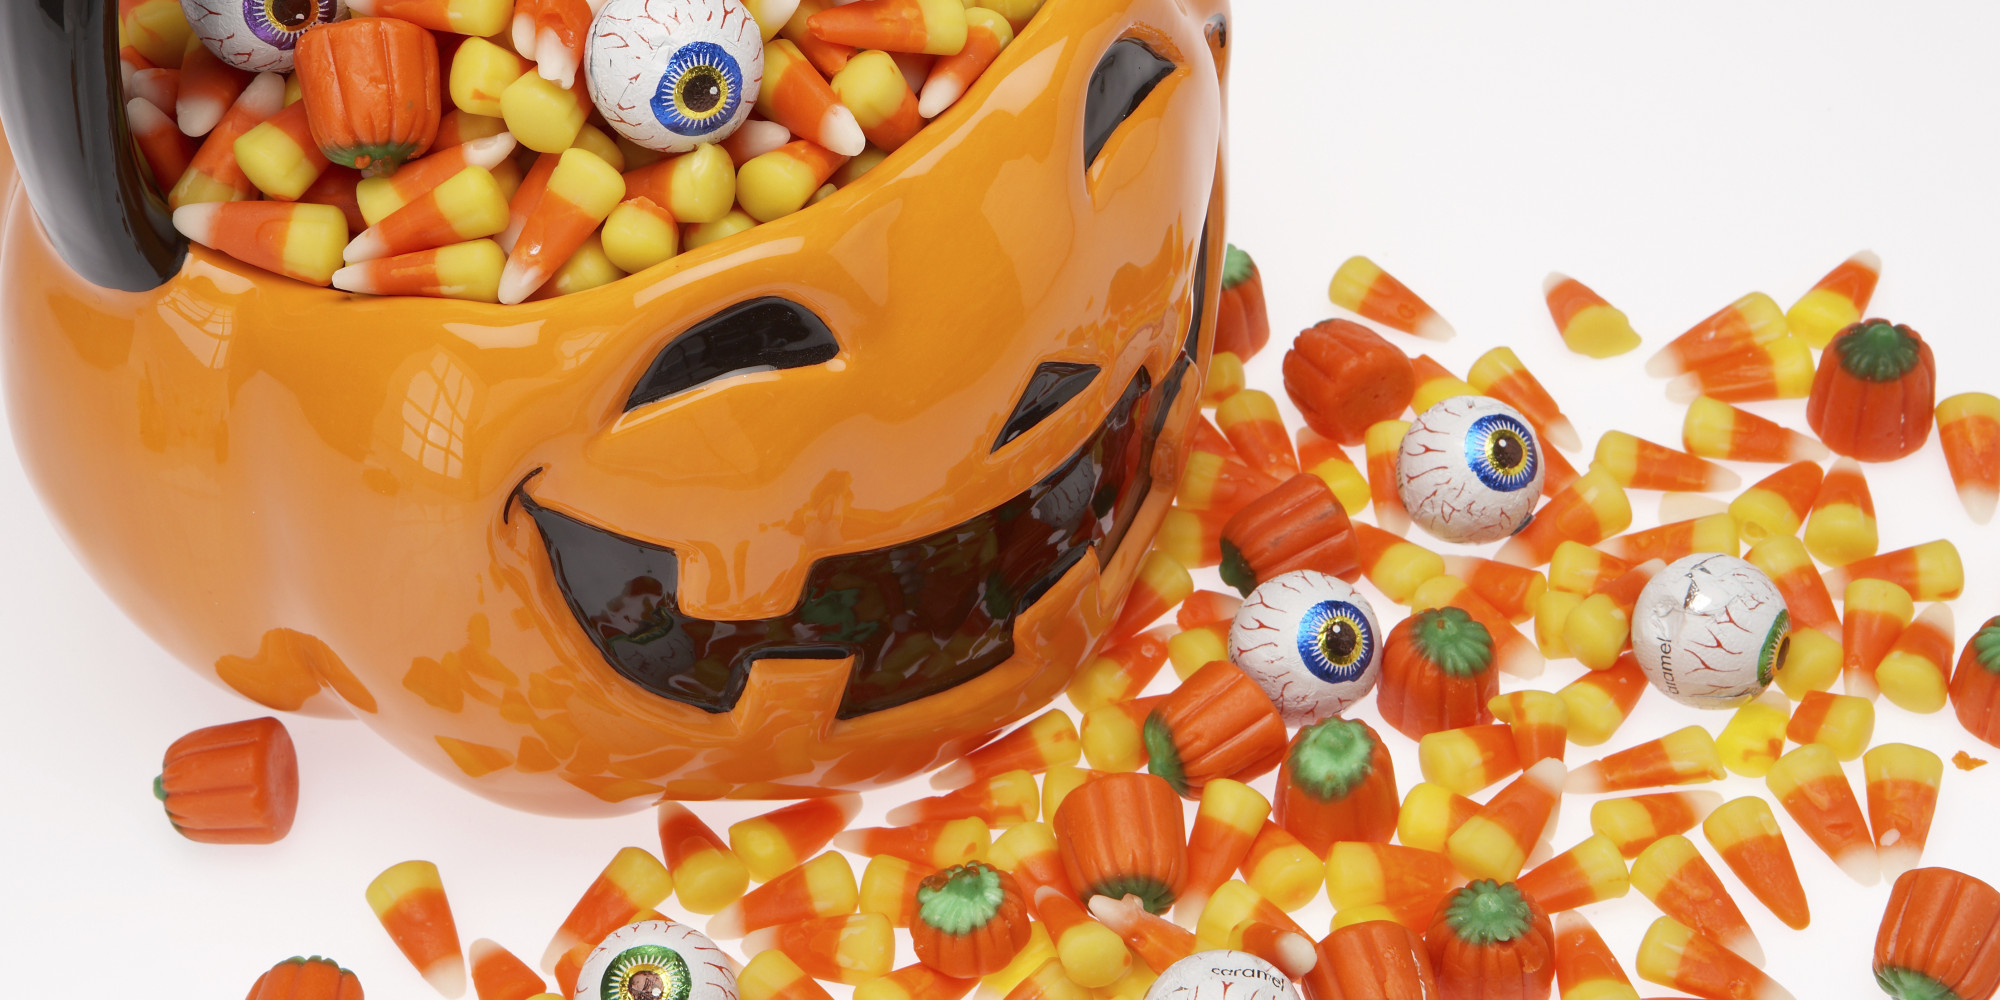 o-HALLOWEEN-CANDY-CORN-JACKOLANTERN-facebook